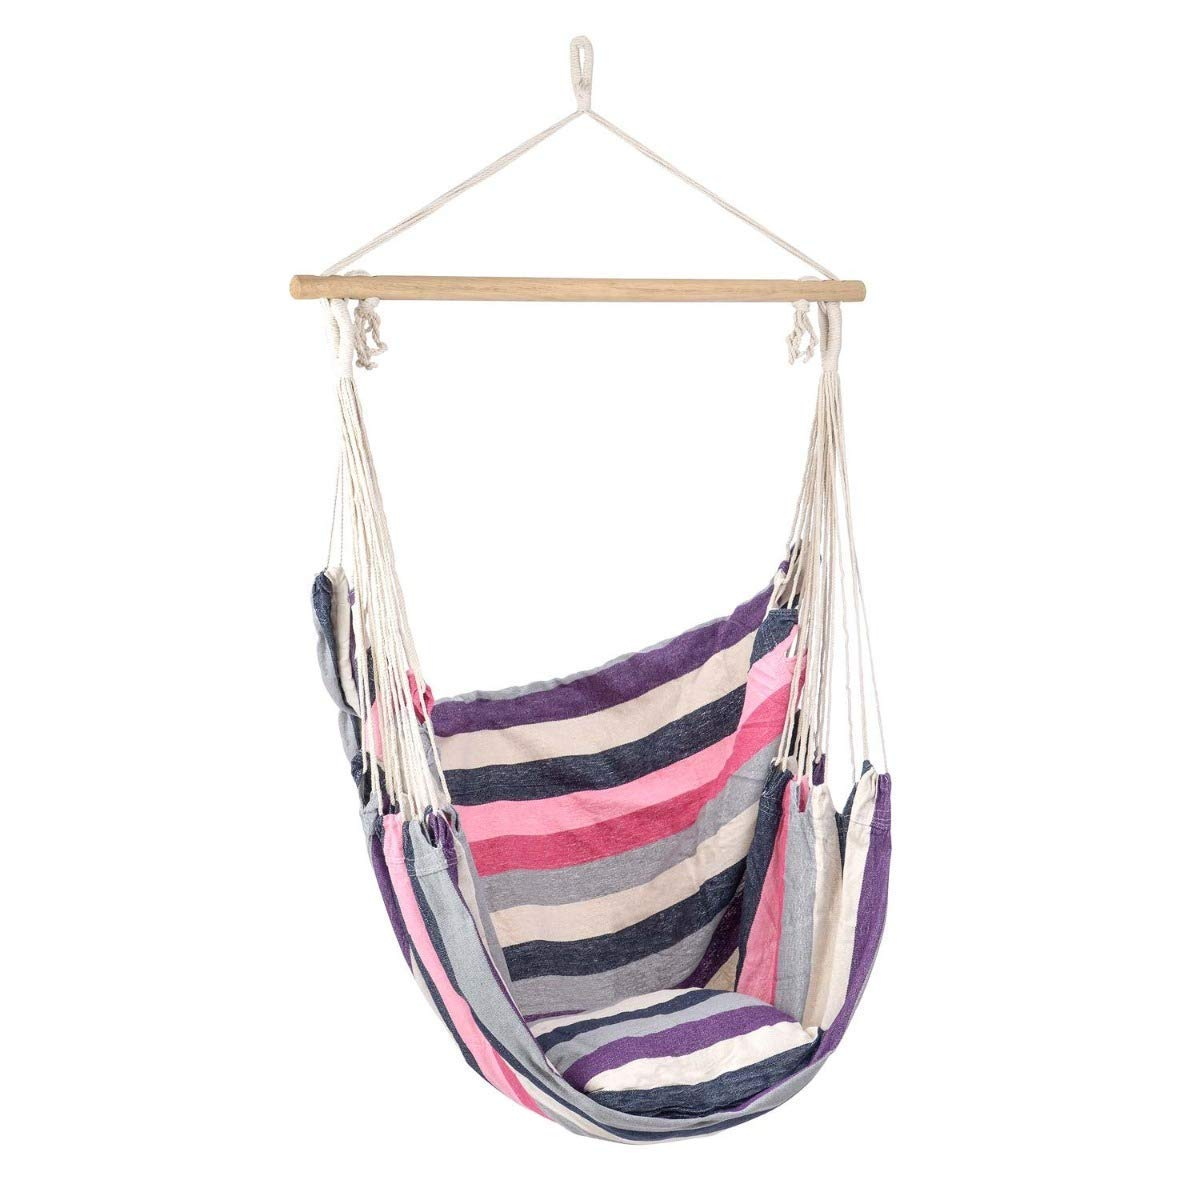 Indoor Blue Soft Padded Cushion Lelestar/Small Hammock Swing Chair Outdoor Beach Stripe Cotton Canvas Relaxing Outdoor Garden Seat